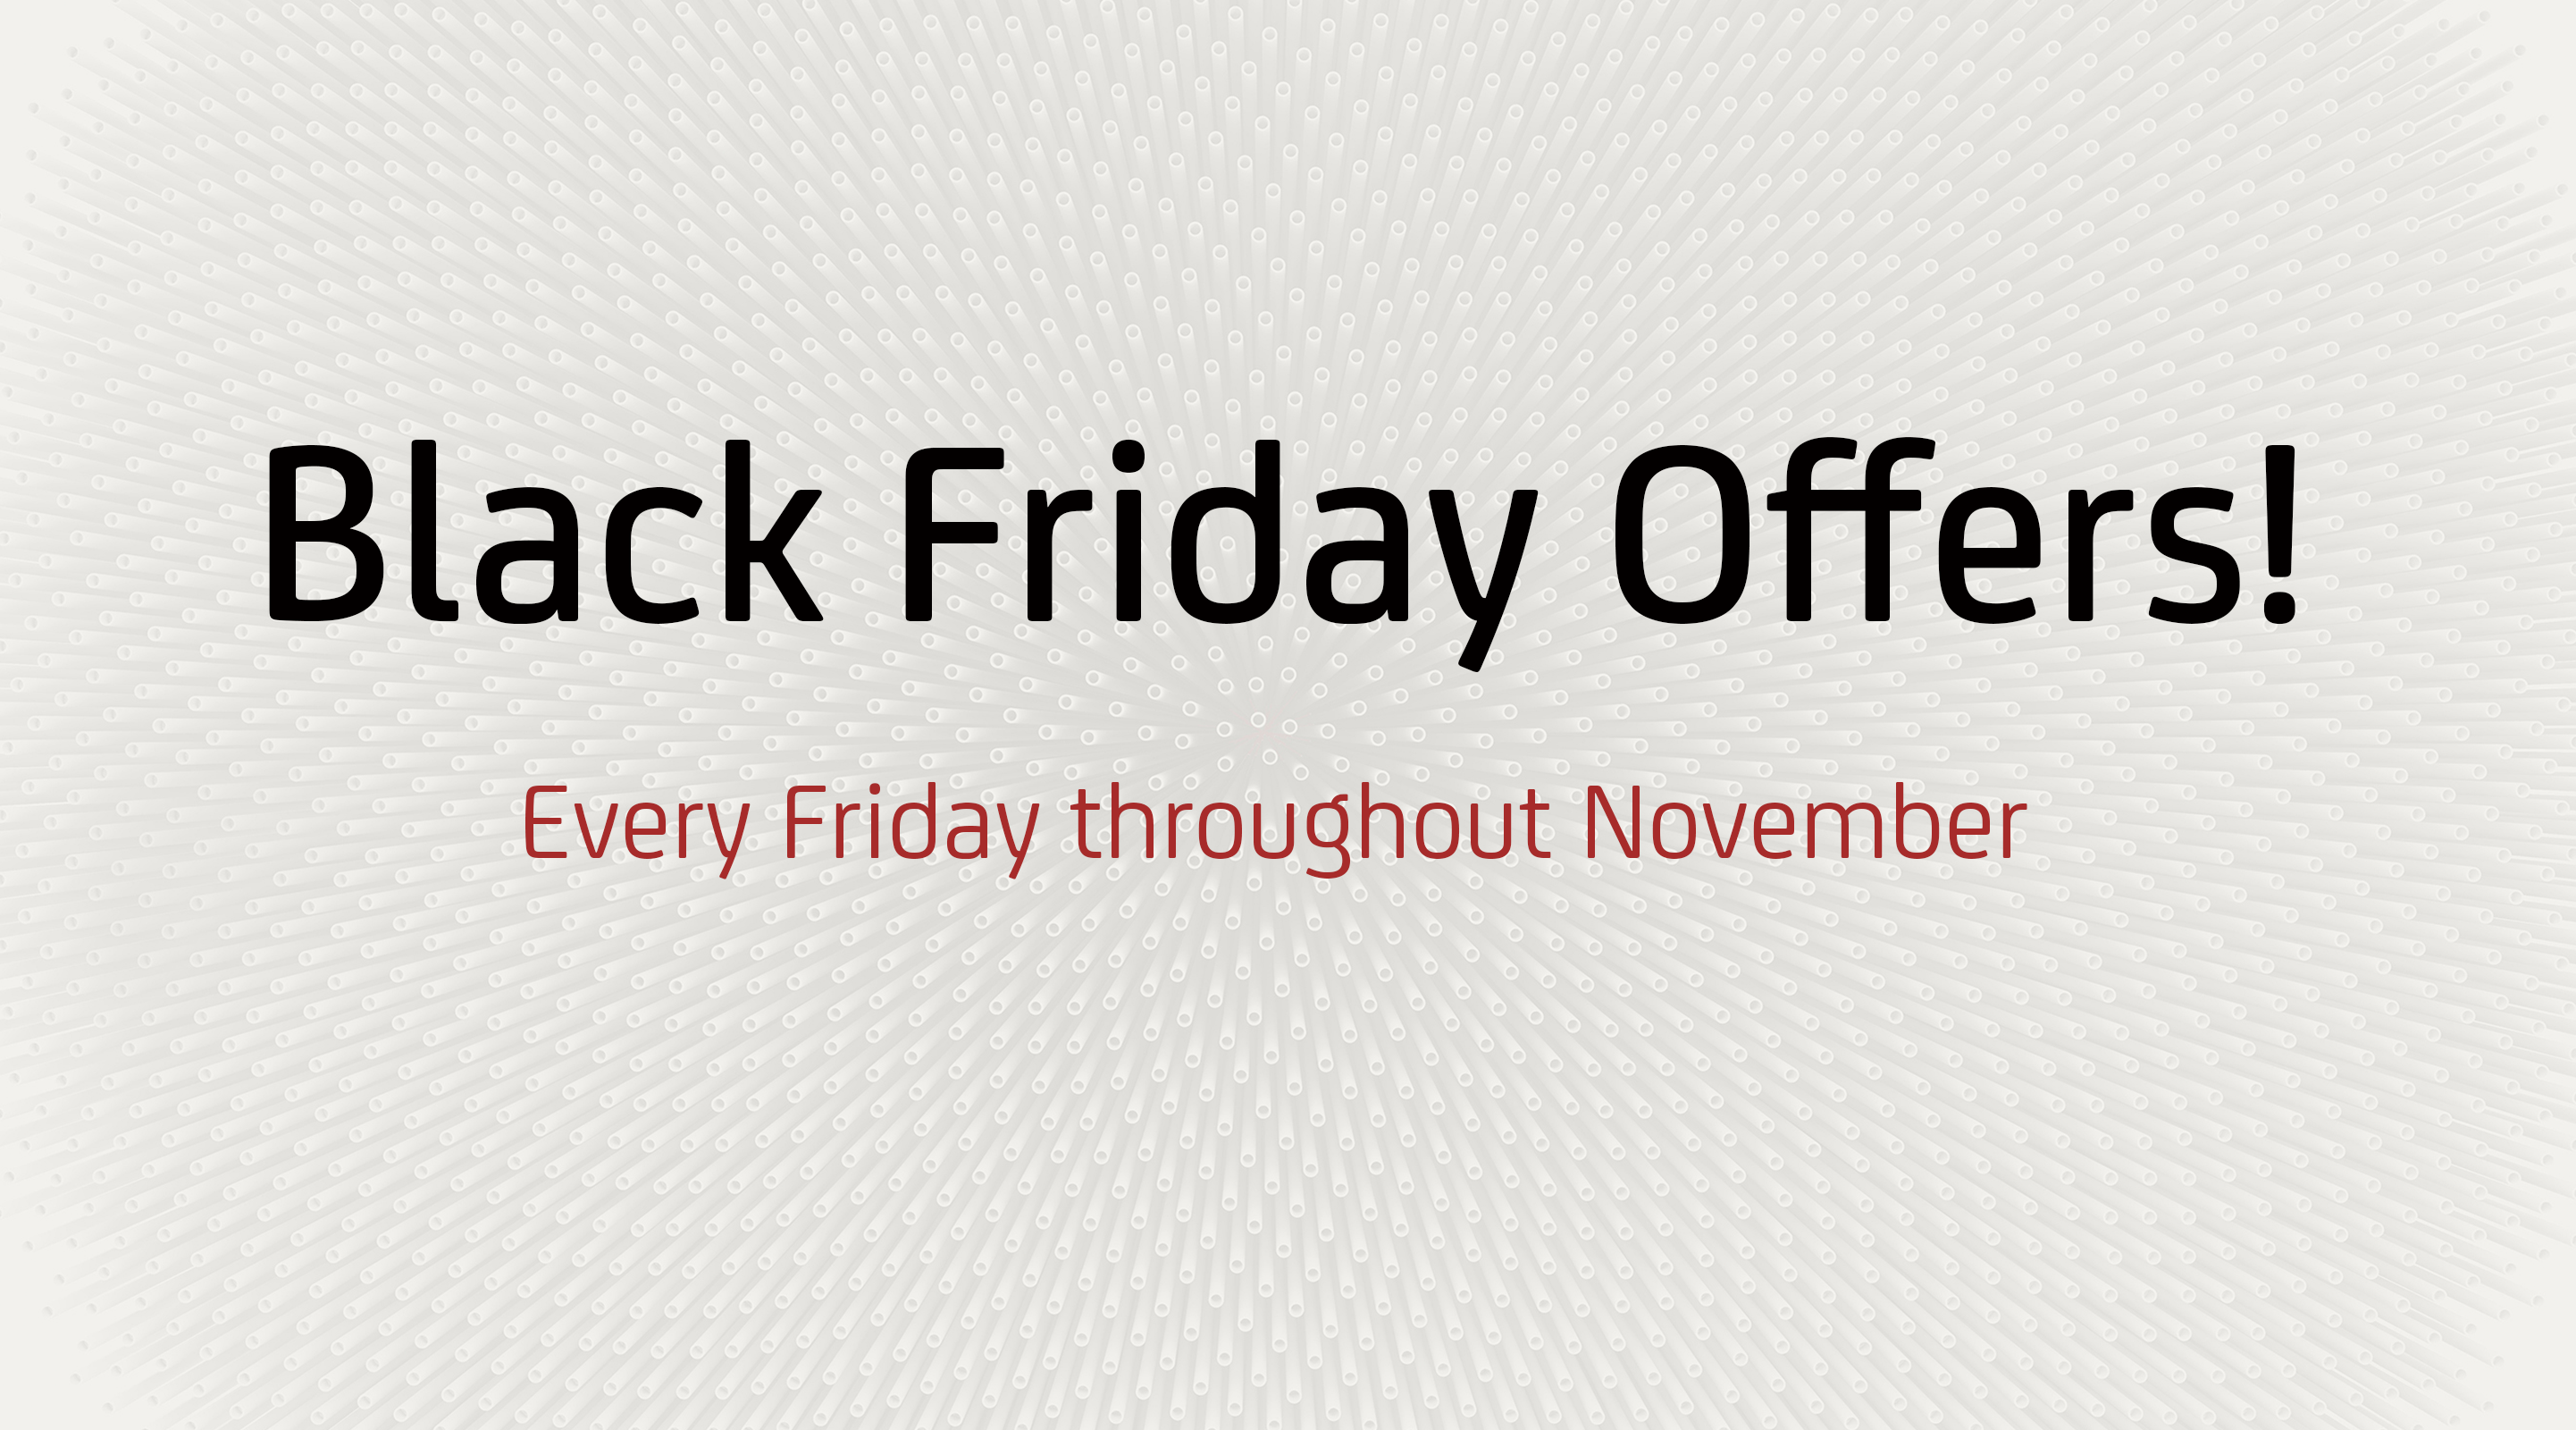 Black Friday every Friday throughout November!